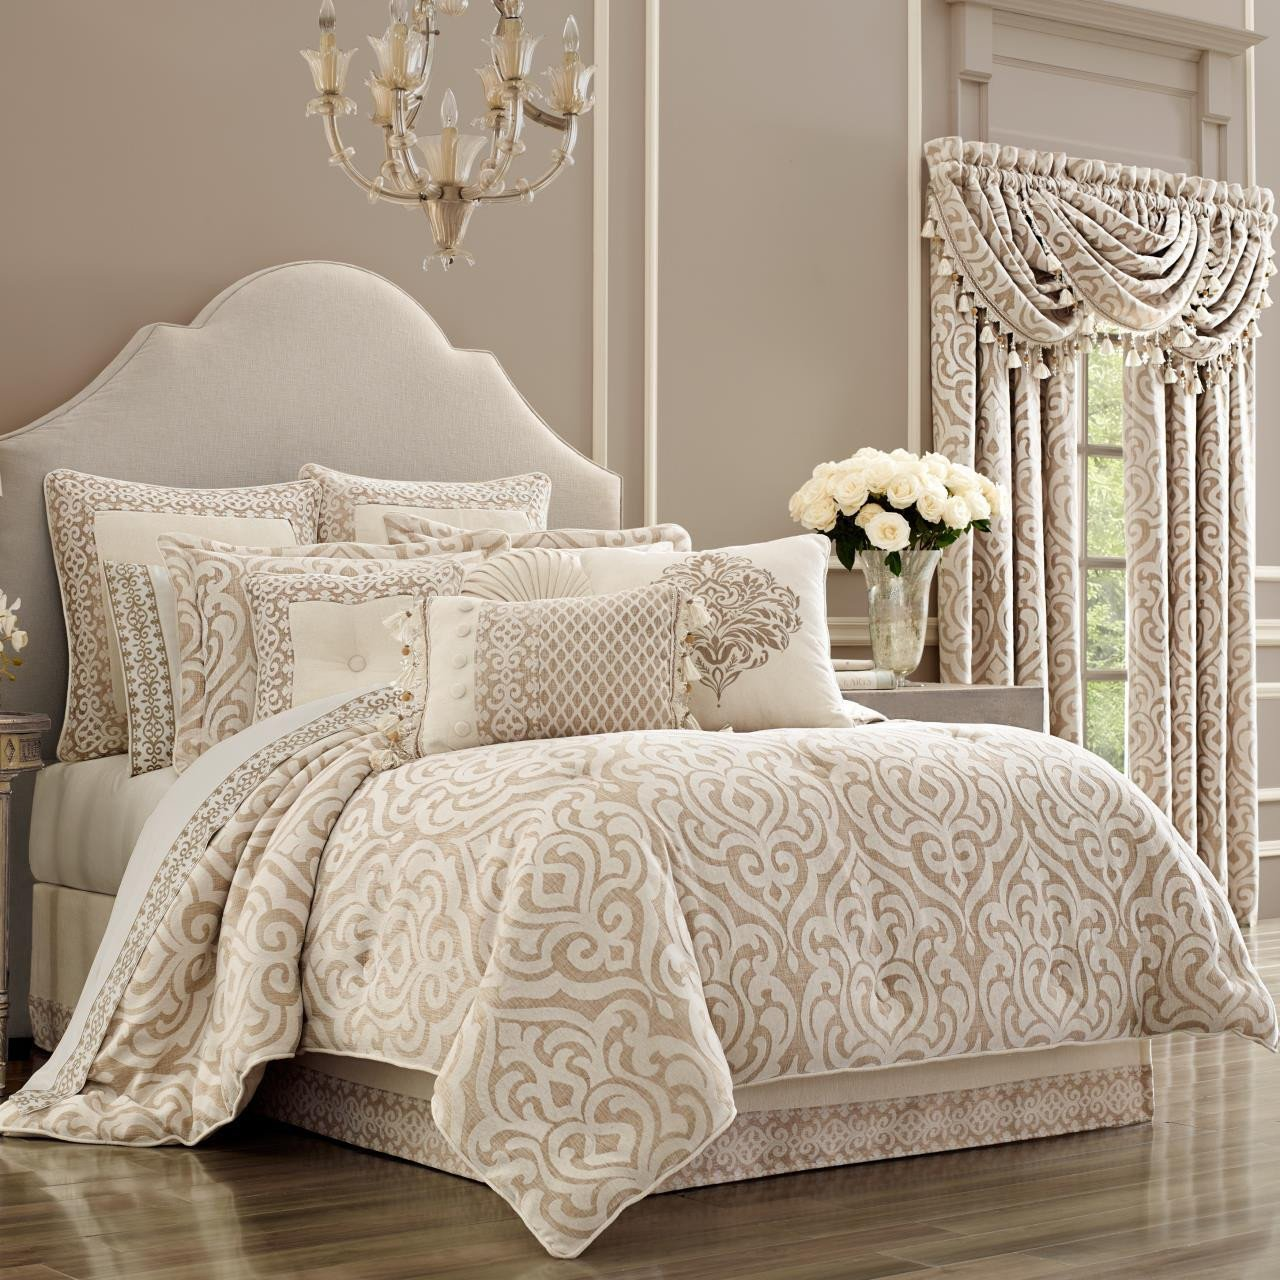 King Bedroom Comforter Set Inspirational Milano Sand forter Collection by J Queen New York